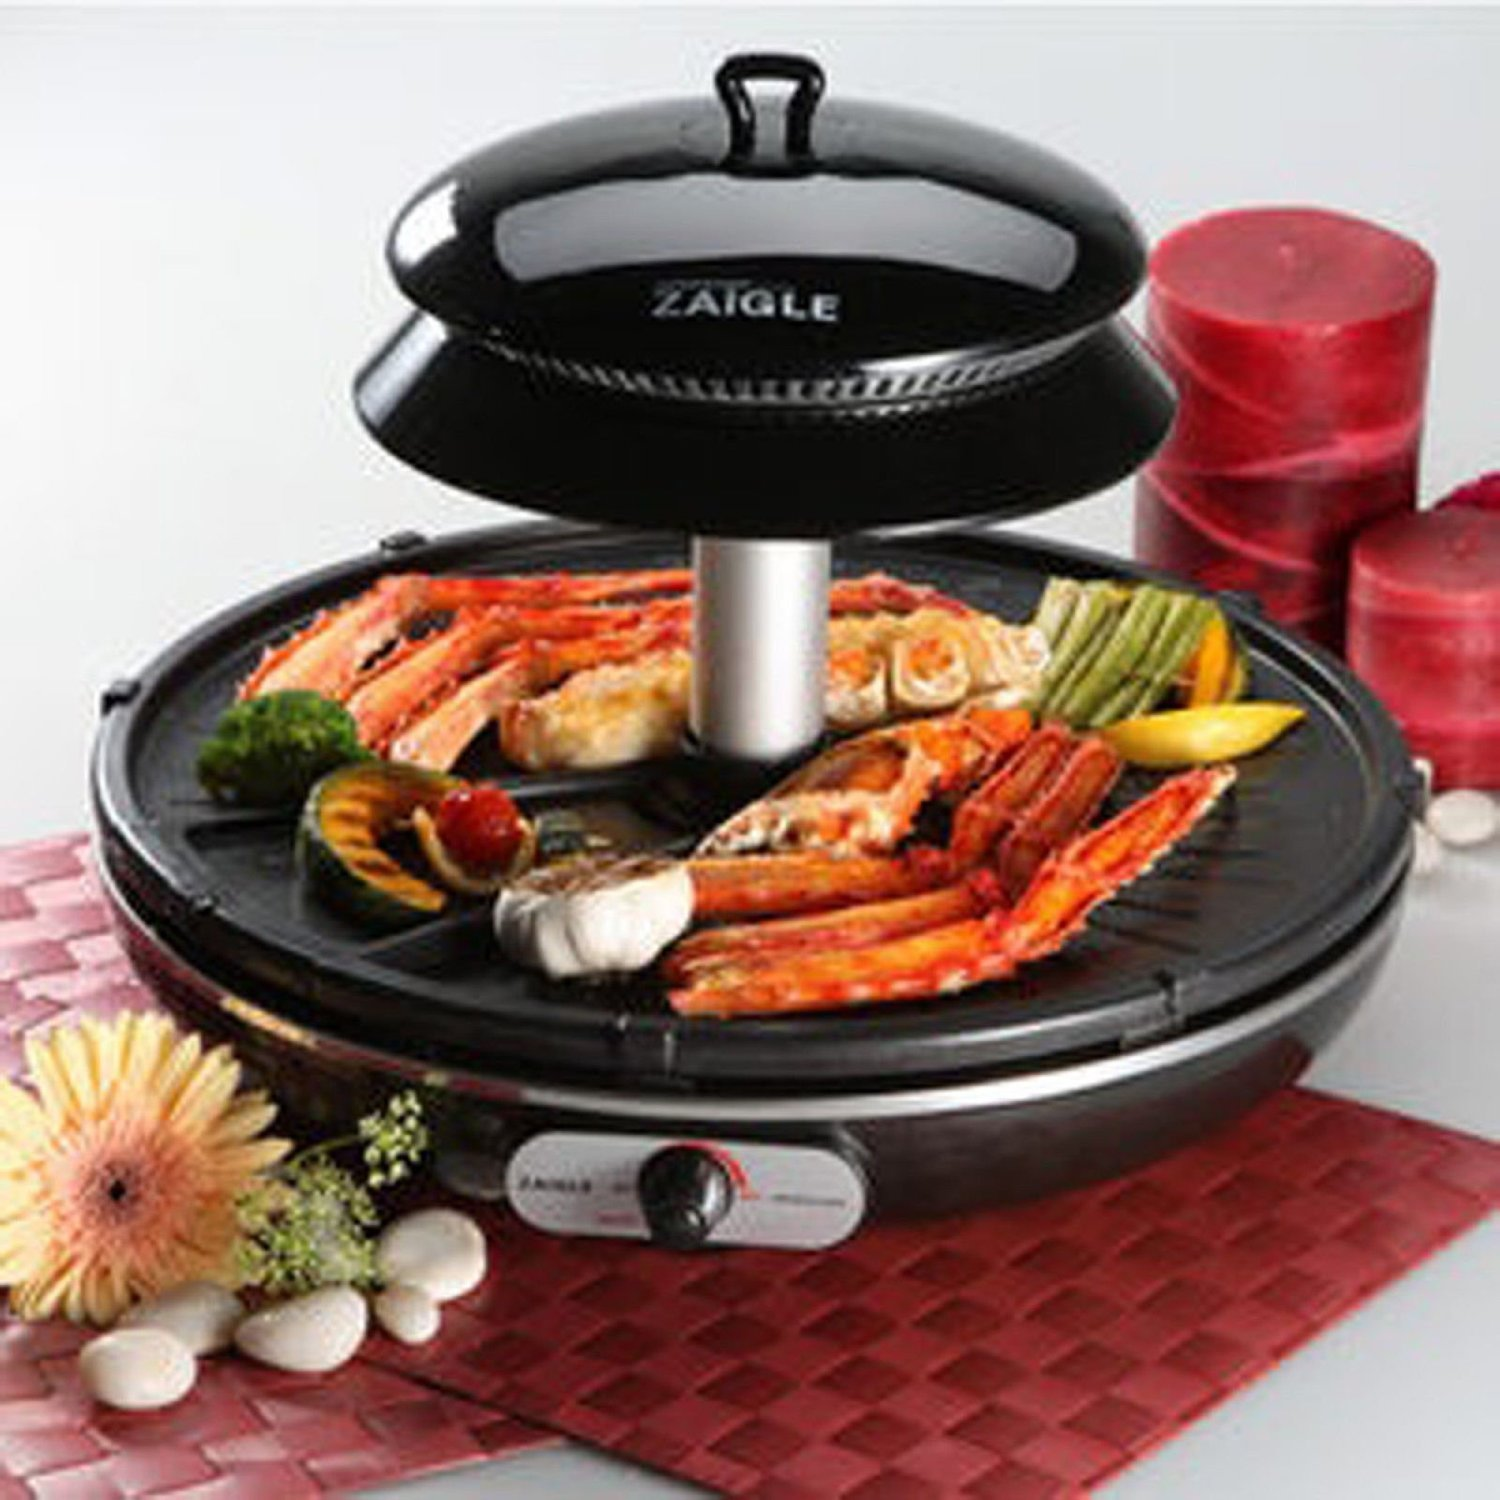 Amazon.com : ZAIGLE ZR-0907 Infrared Ray Well-being Roaster Indoor ...